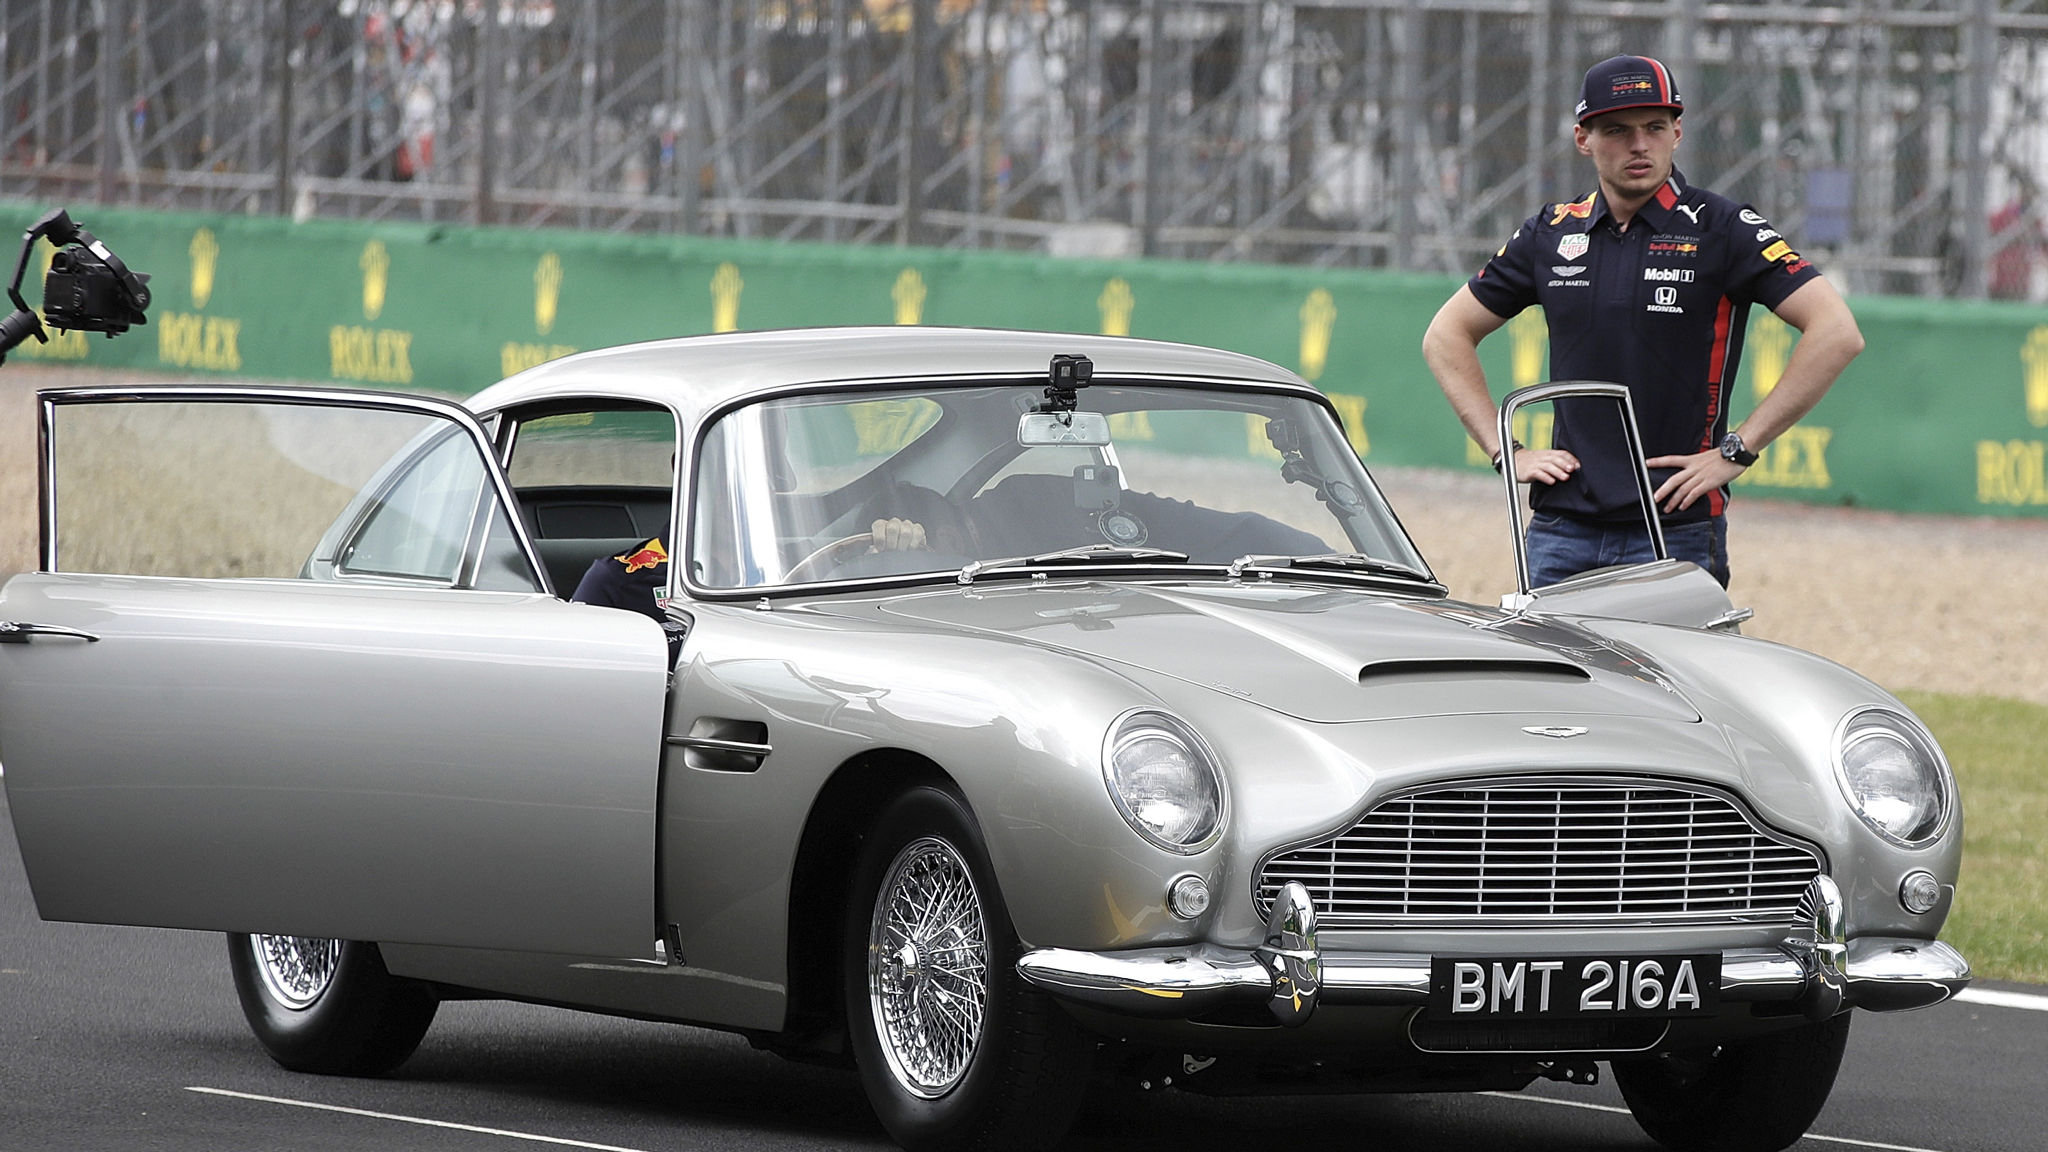 Opening Quote Aston Martin Shares Skid Lower After Warning Financial Times